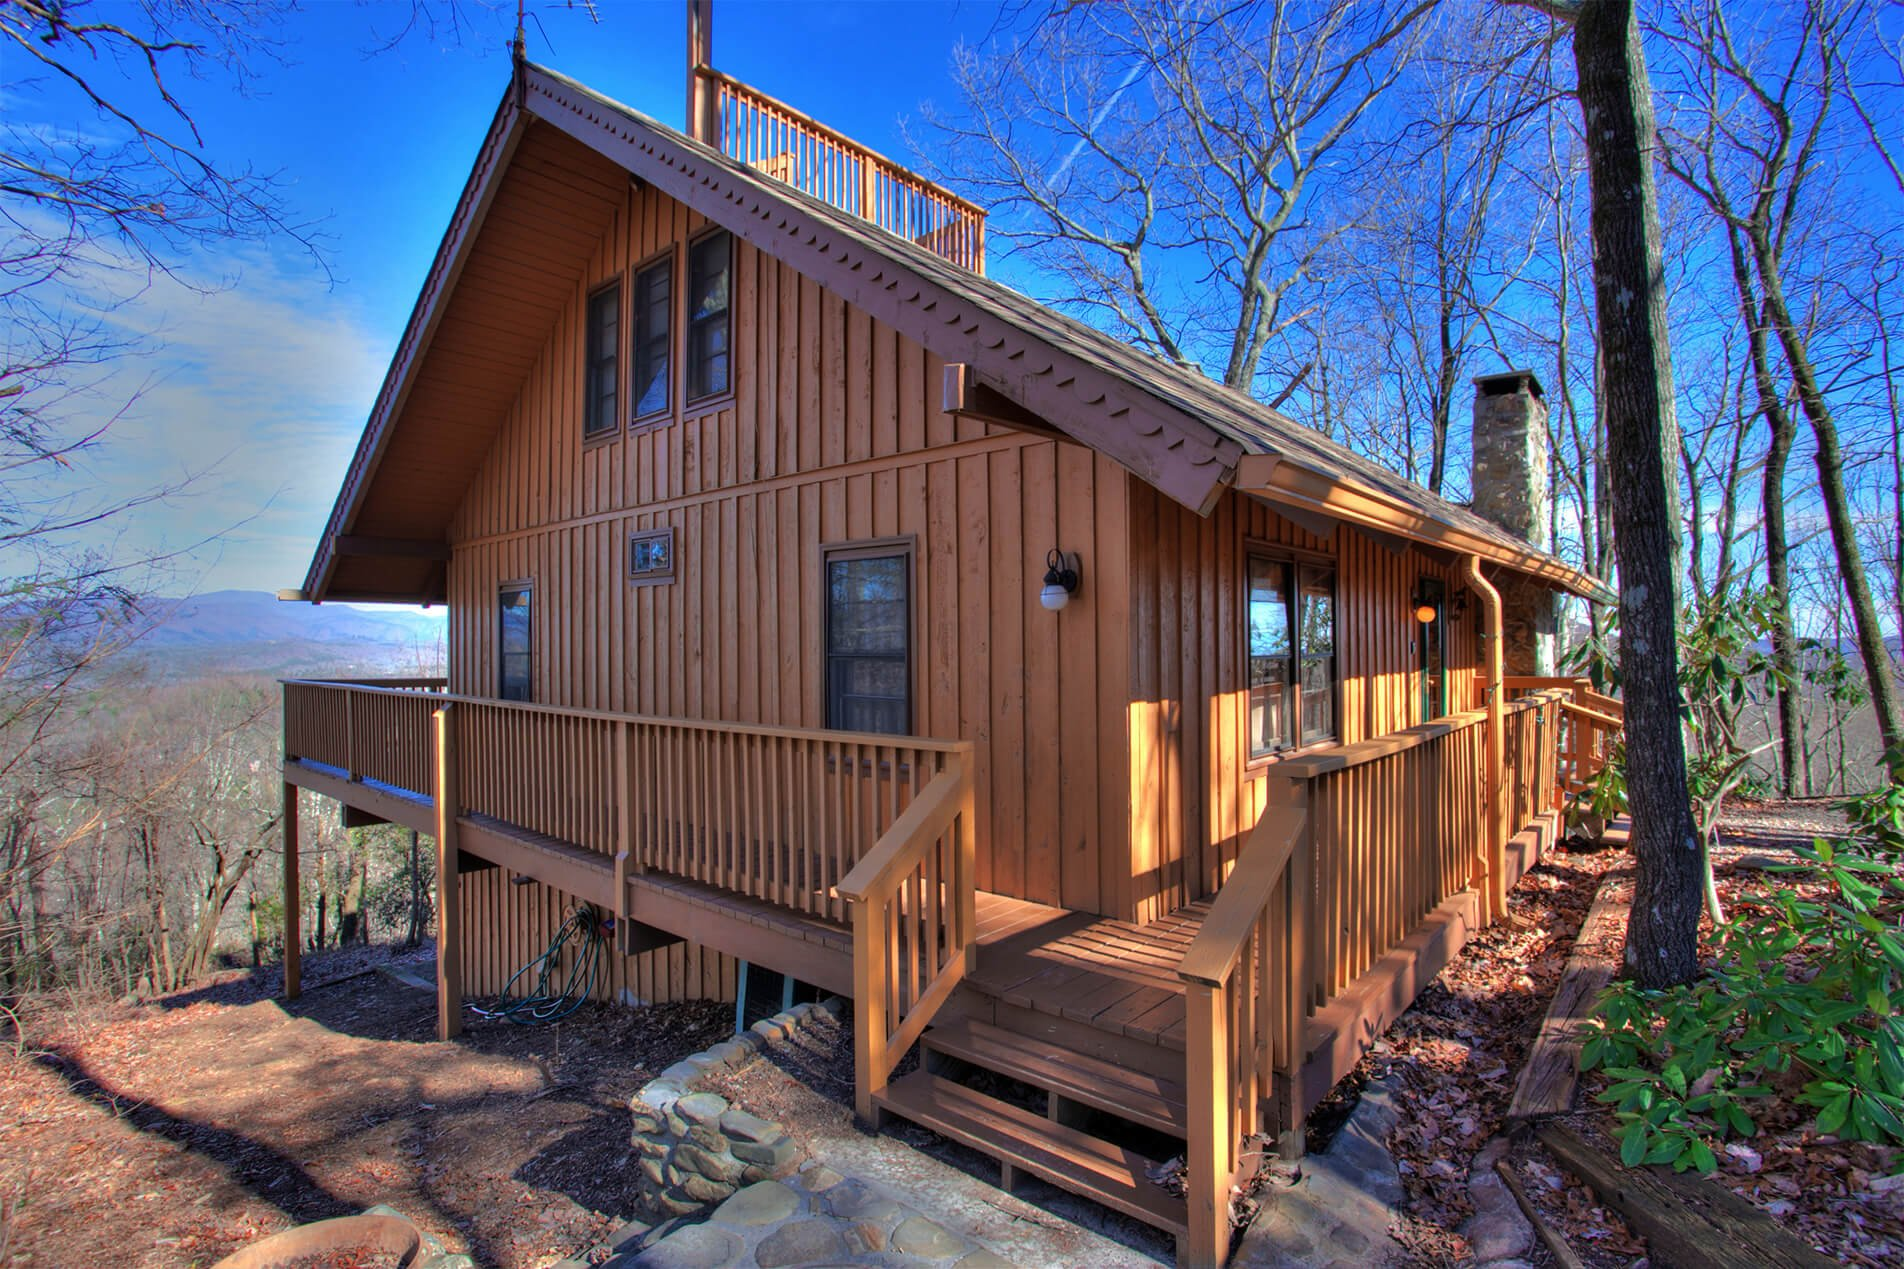 Chalet-in-the-Sky-Cedar-Creek-Cabin-Rentals-Helen-Georgia-top-banner-1